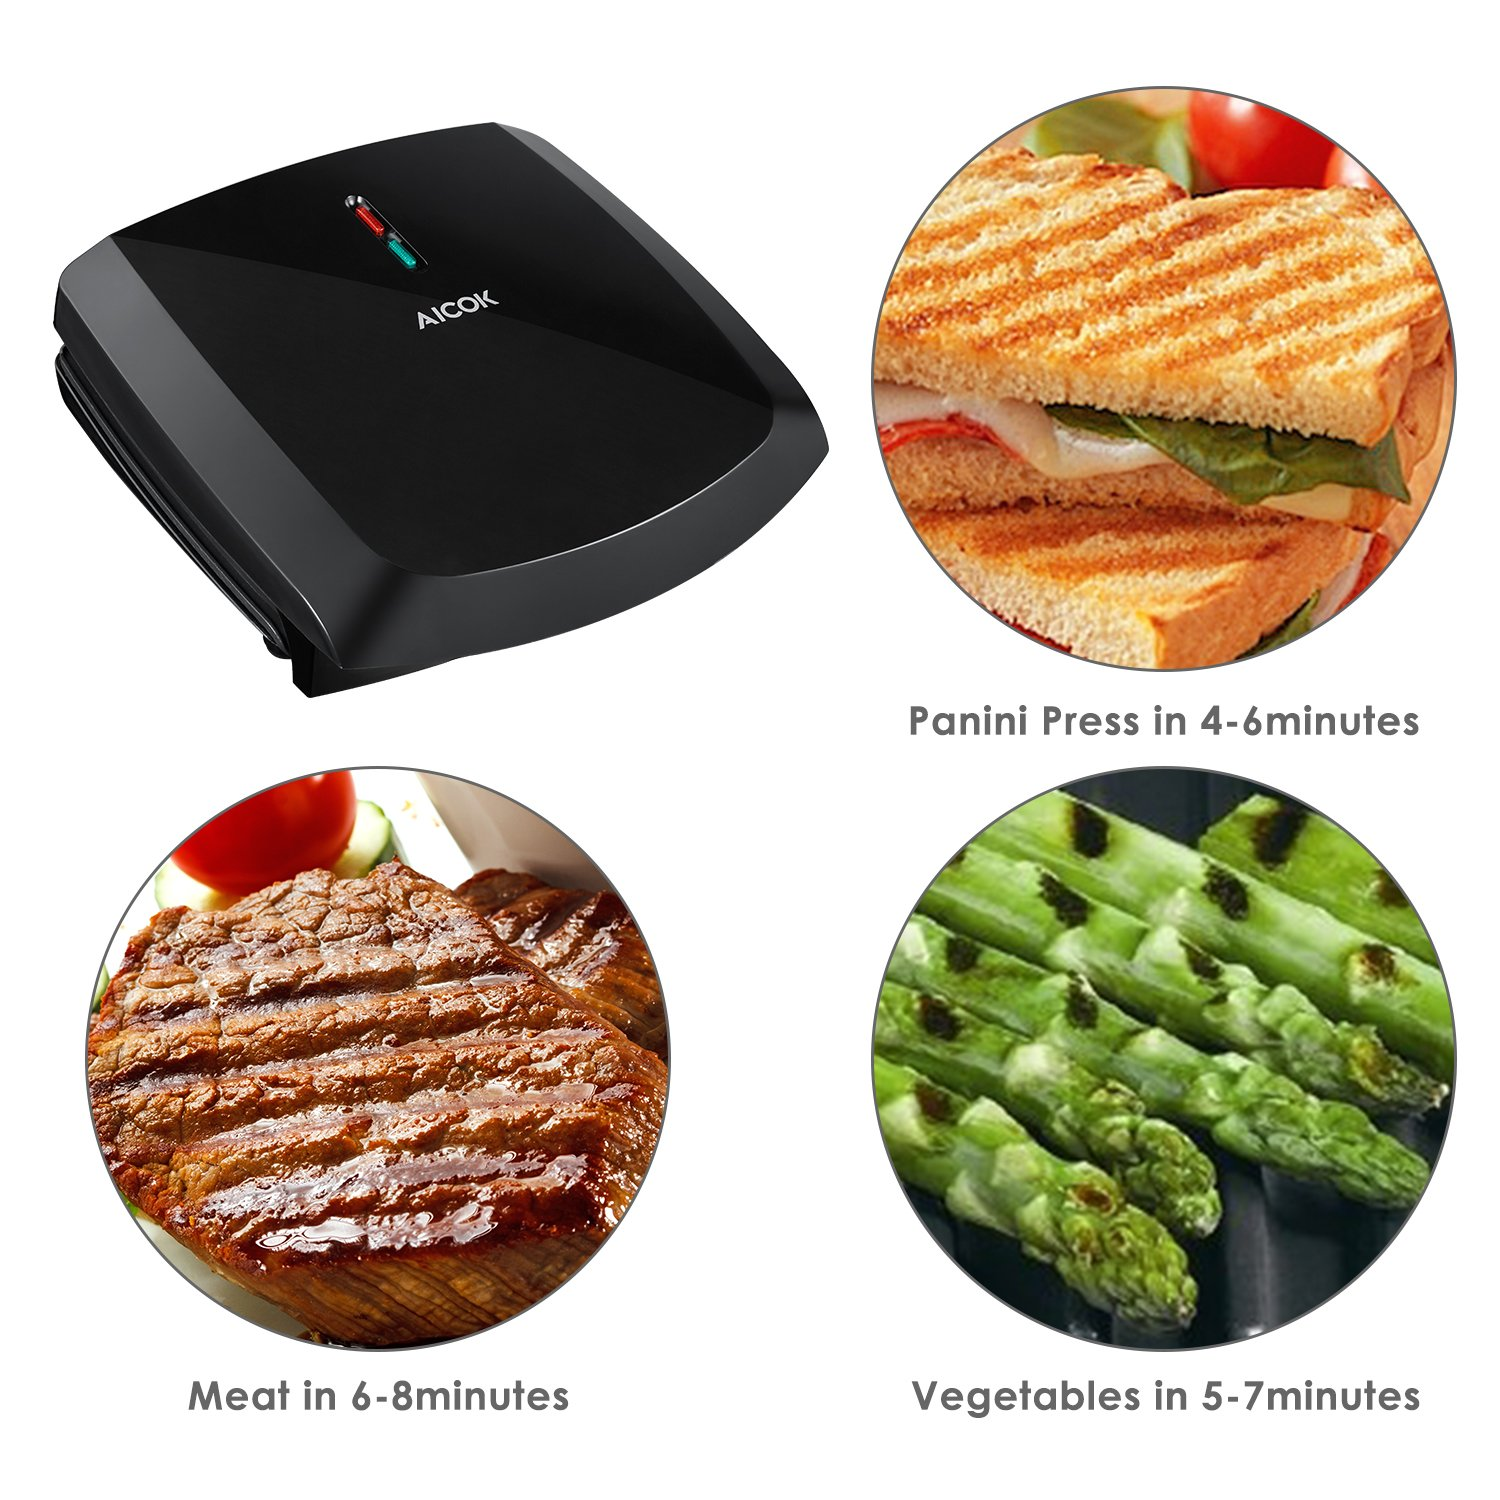 Aicok Panini Press 1000W Fast Cooking Non-Stick Sandwich Maker, 2-Serving Compact Indoor Grill with Drip Tray, Black by AICOK (Image #2)